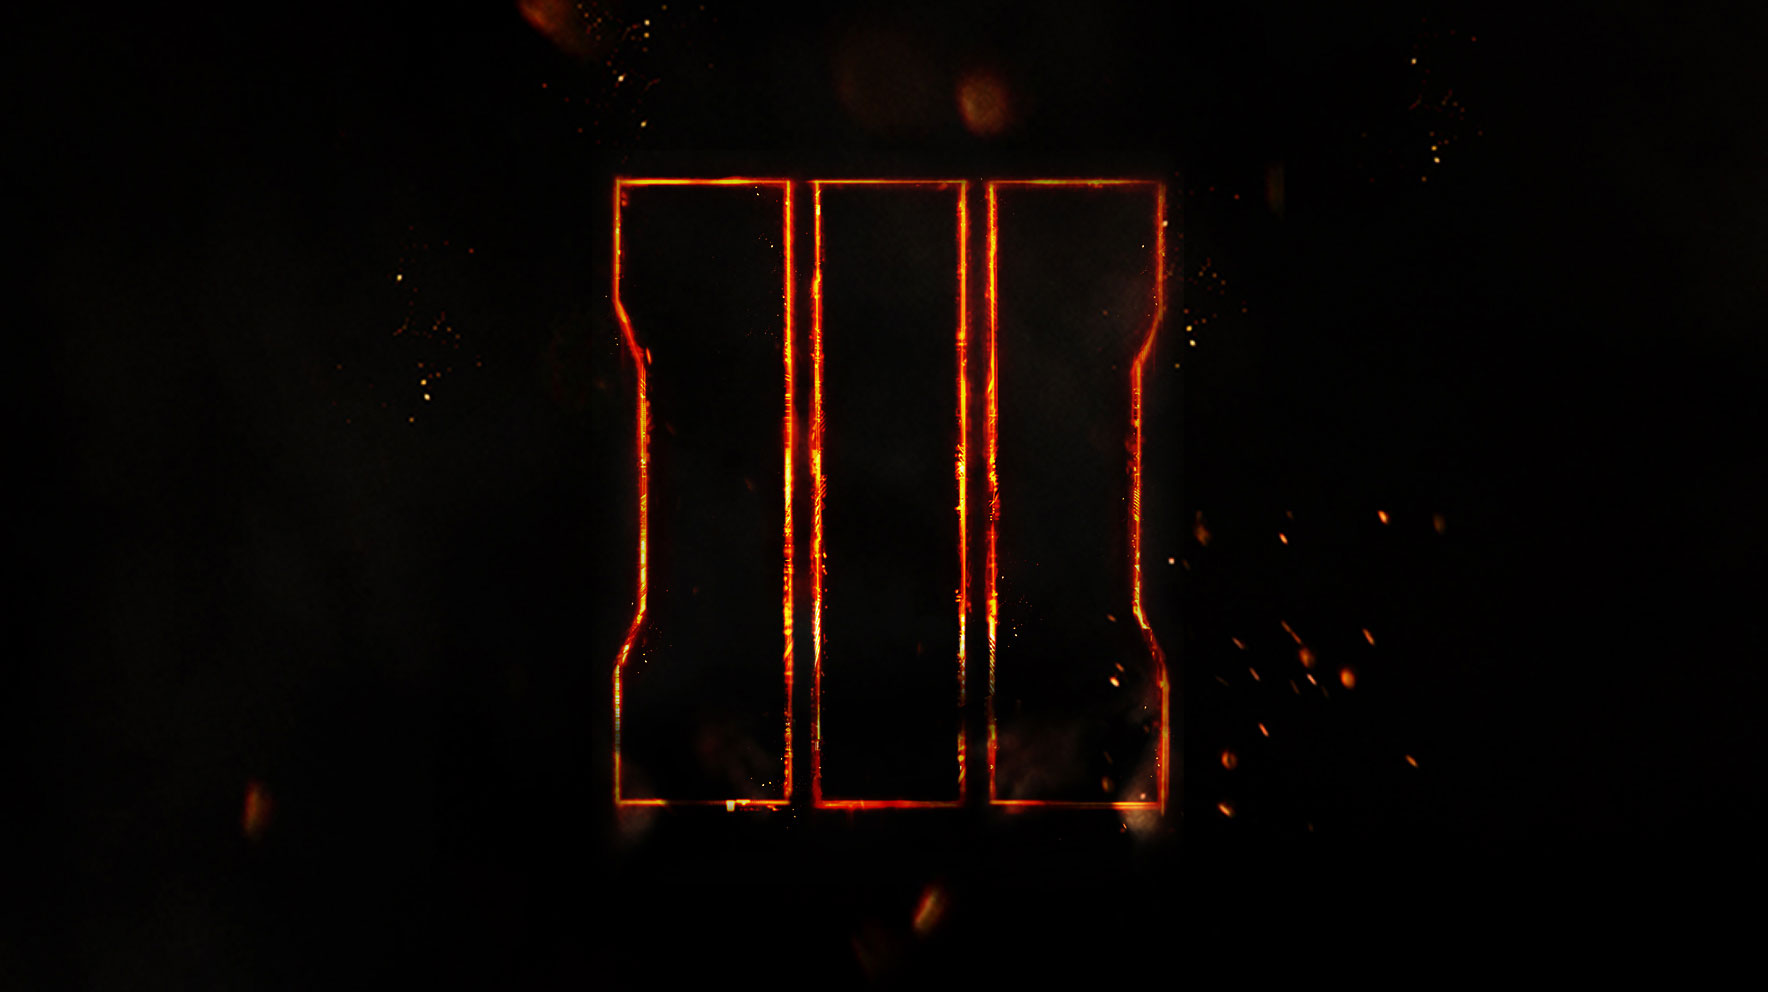 50 Bo3 Live Wallpaper On Wallpapersafari